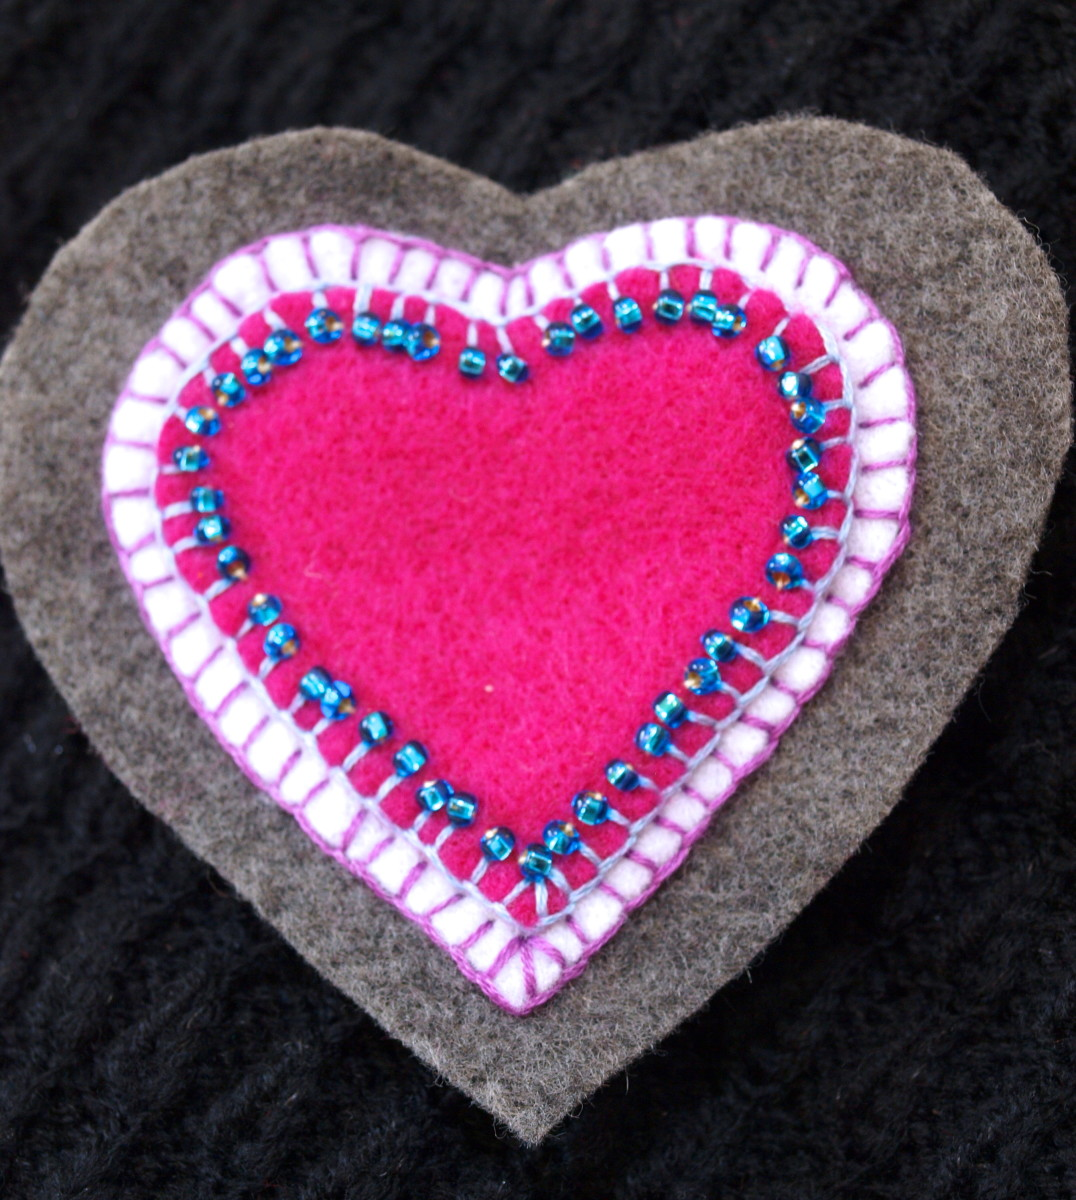 Here's another brooch using the same steps—a heart-shaped felt brooch. I used a blanket stitch for all the layers and added the blue beads after I had stitched the pink heart to the white heart.